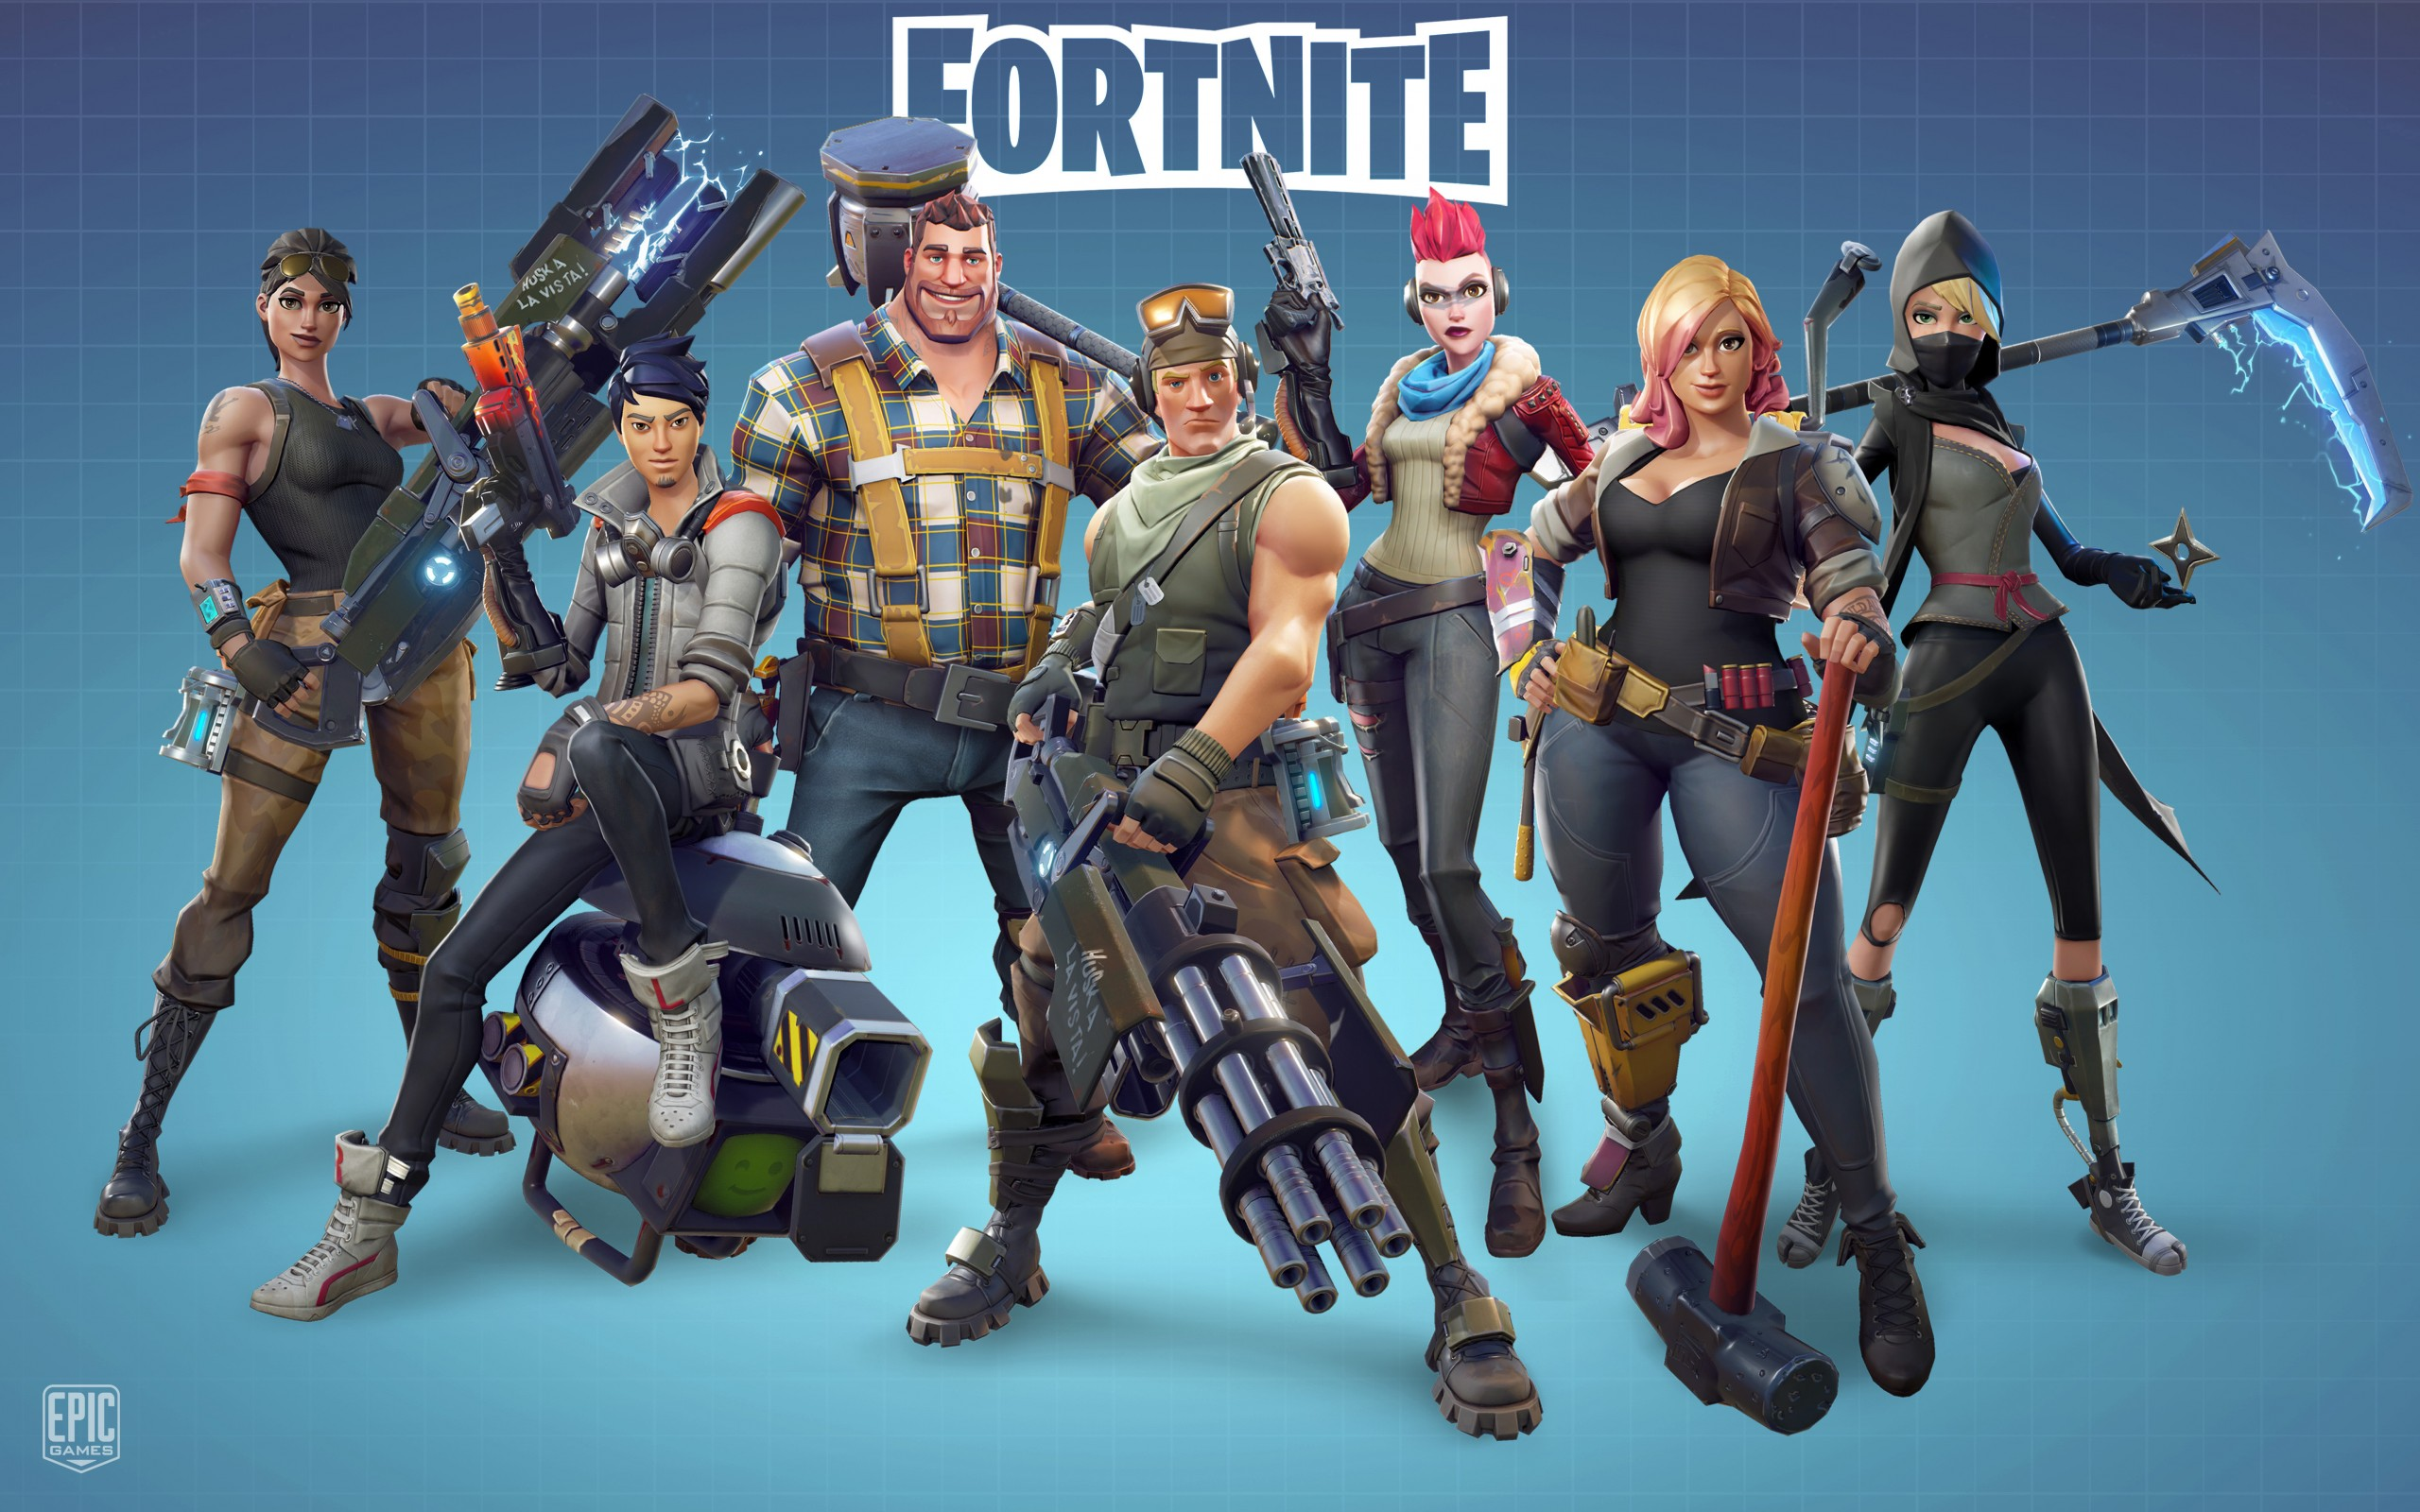 Fortnite Video Game Wallpaper Background 62256 2560x1600 px ~ HDWallSource.com